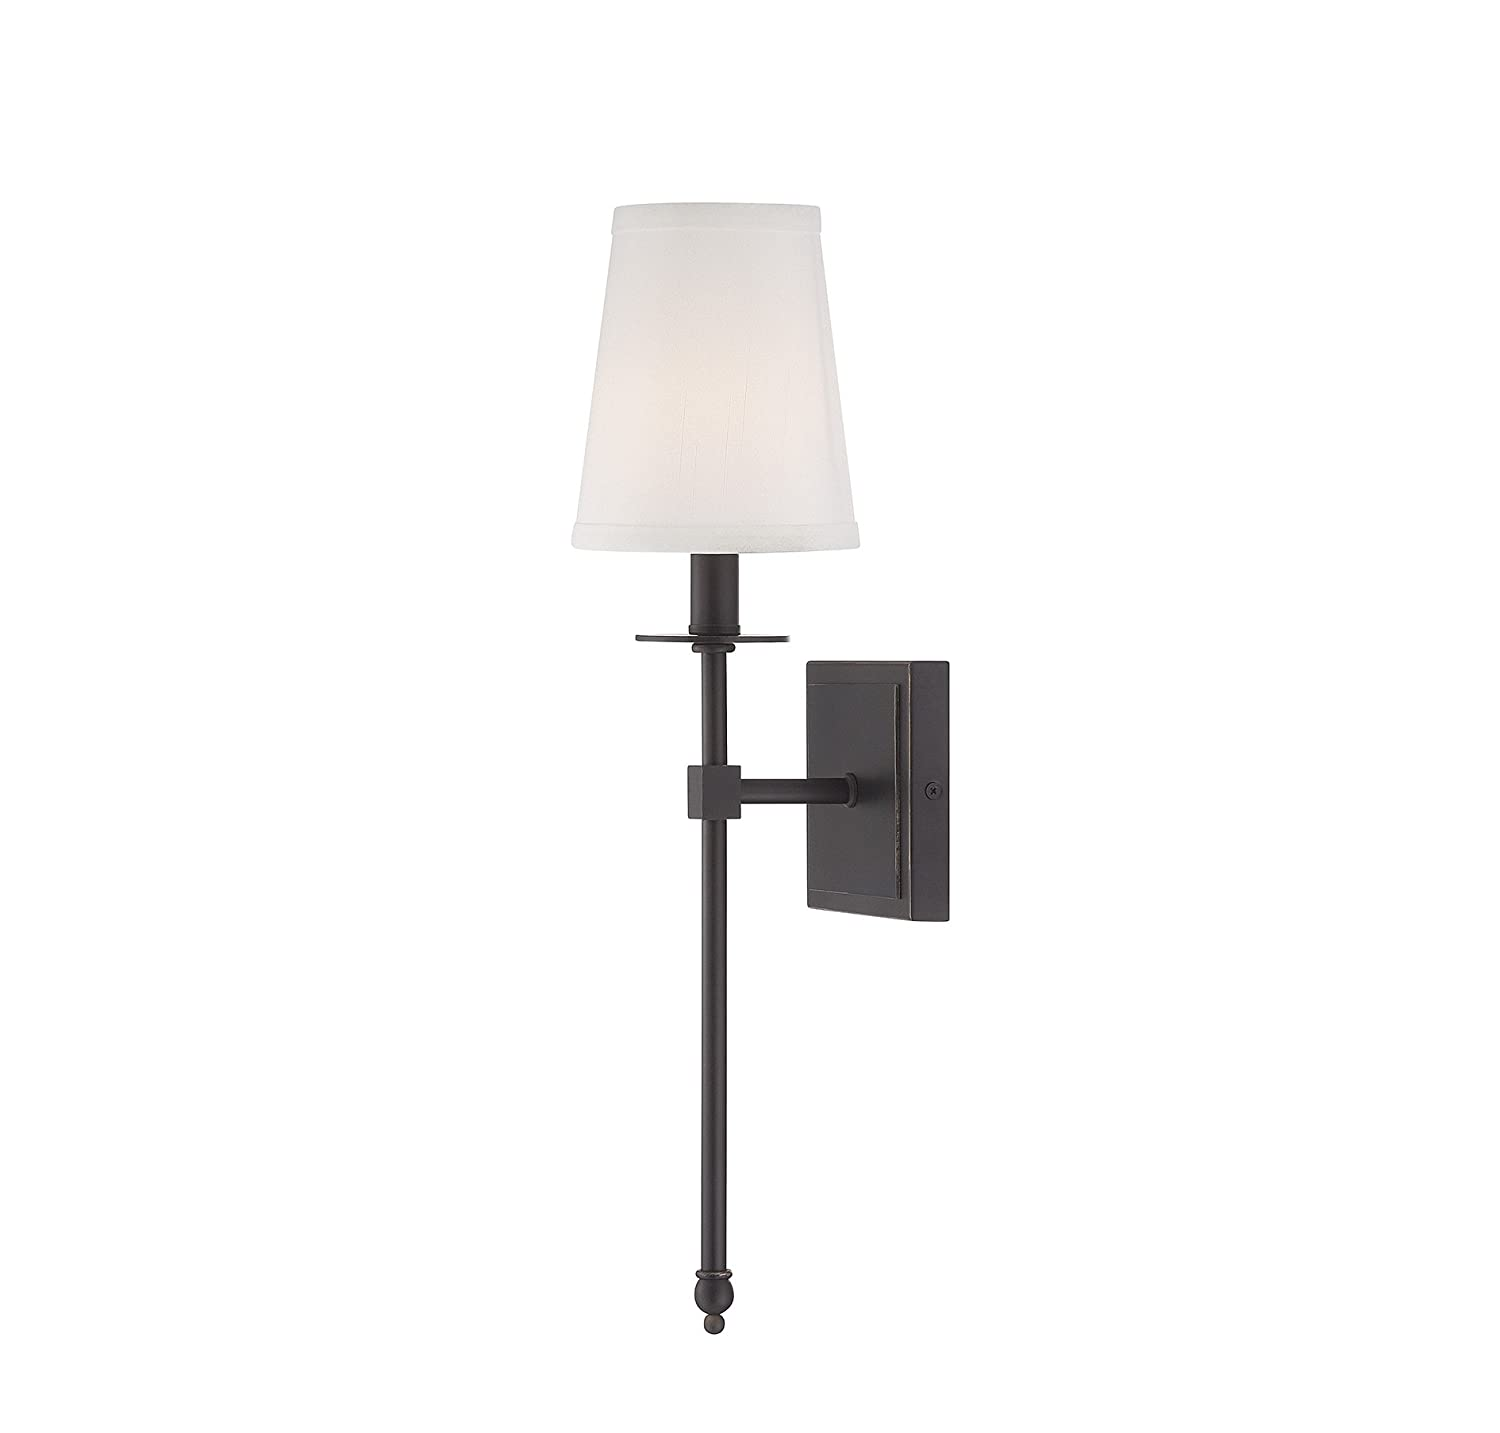 Savoy house 9 302 1 44 monroe 1 light sconce classic bronze savoy house 9 302 1 44 monroe 1 light sconce classic bronze amazon amipublicfo Gallery